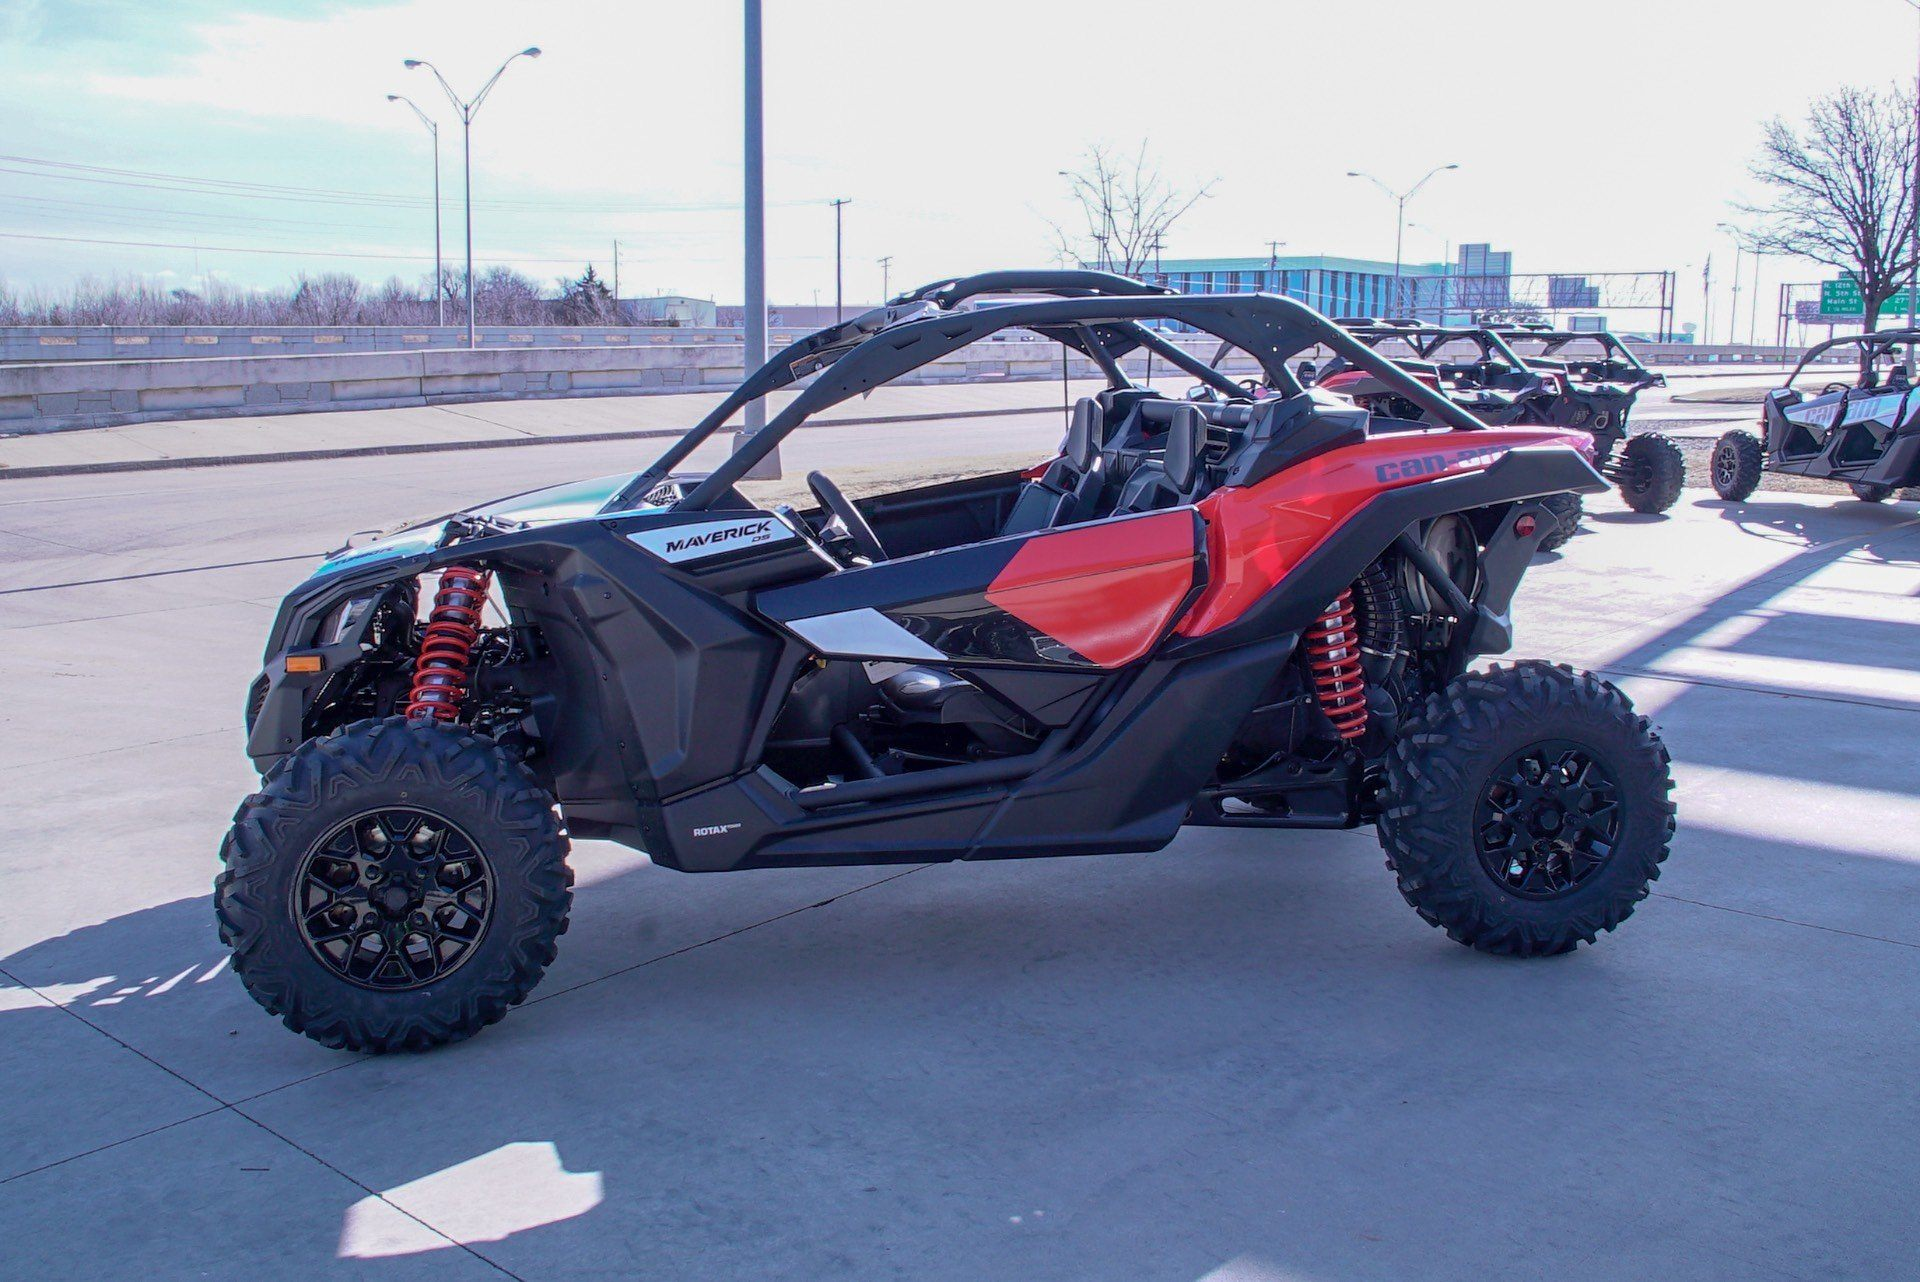 2020 Can-Am Maverick X3 DS Turbo R in Oklahoma City, Oklahoma - Photo 11